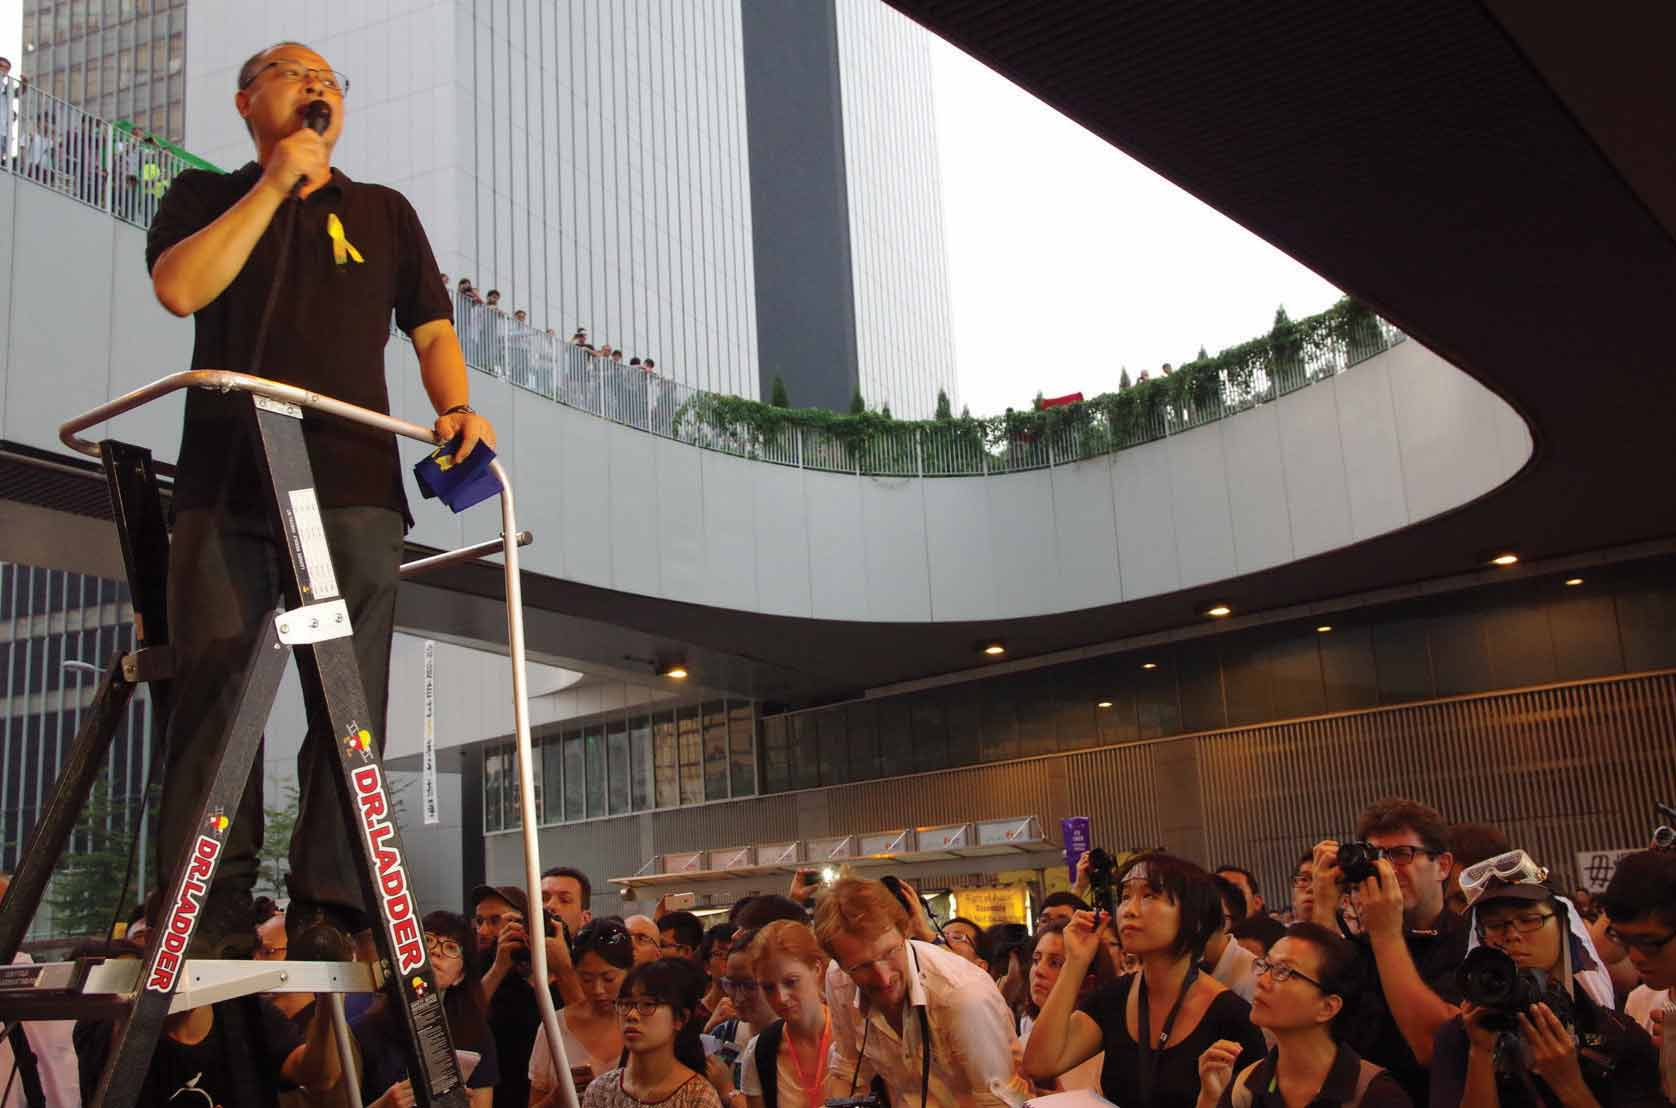 Umbrella Movement leader giving a speech while using the footbridges of Admiralty as a mezzanine, 2014. Photo: FX Pasquier